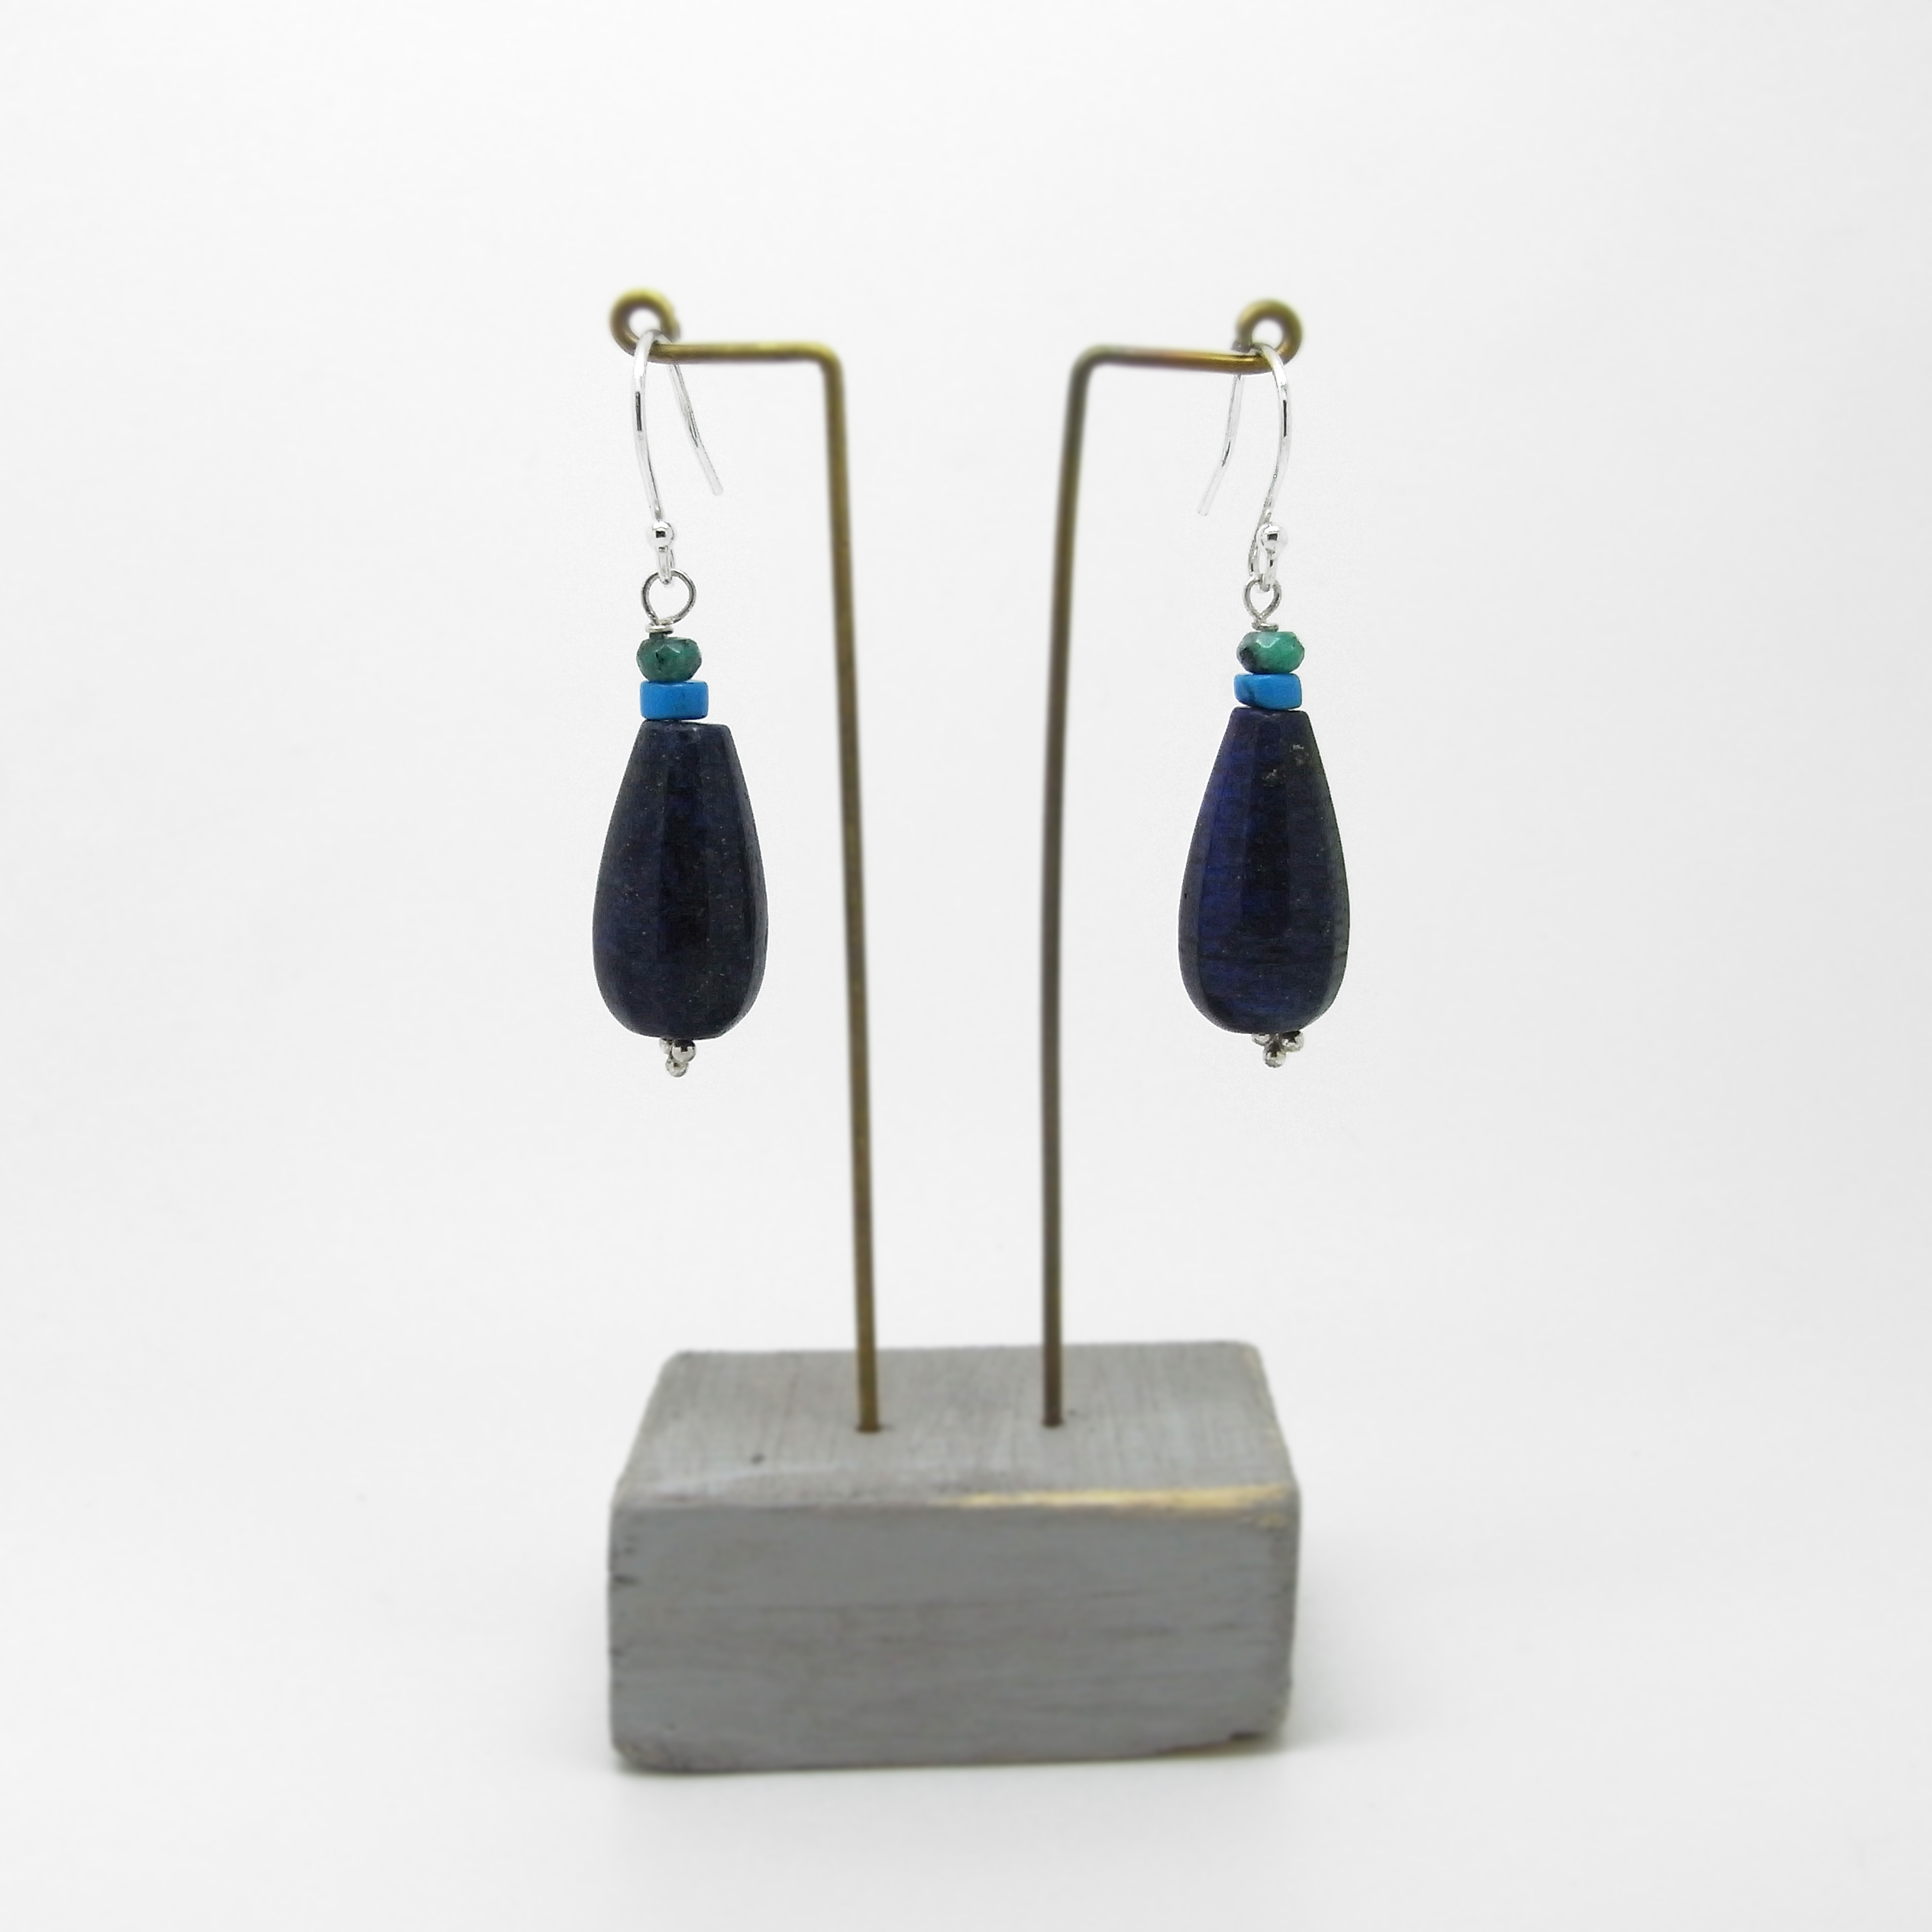 SALE - Lapis and Turquoise Bead Earrings Small